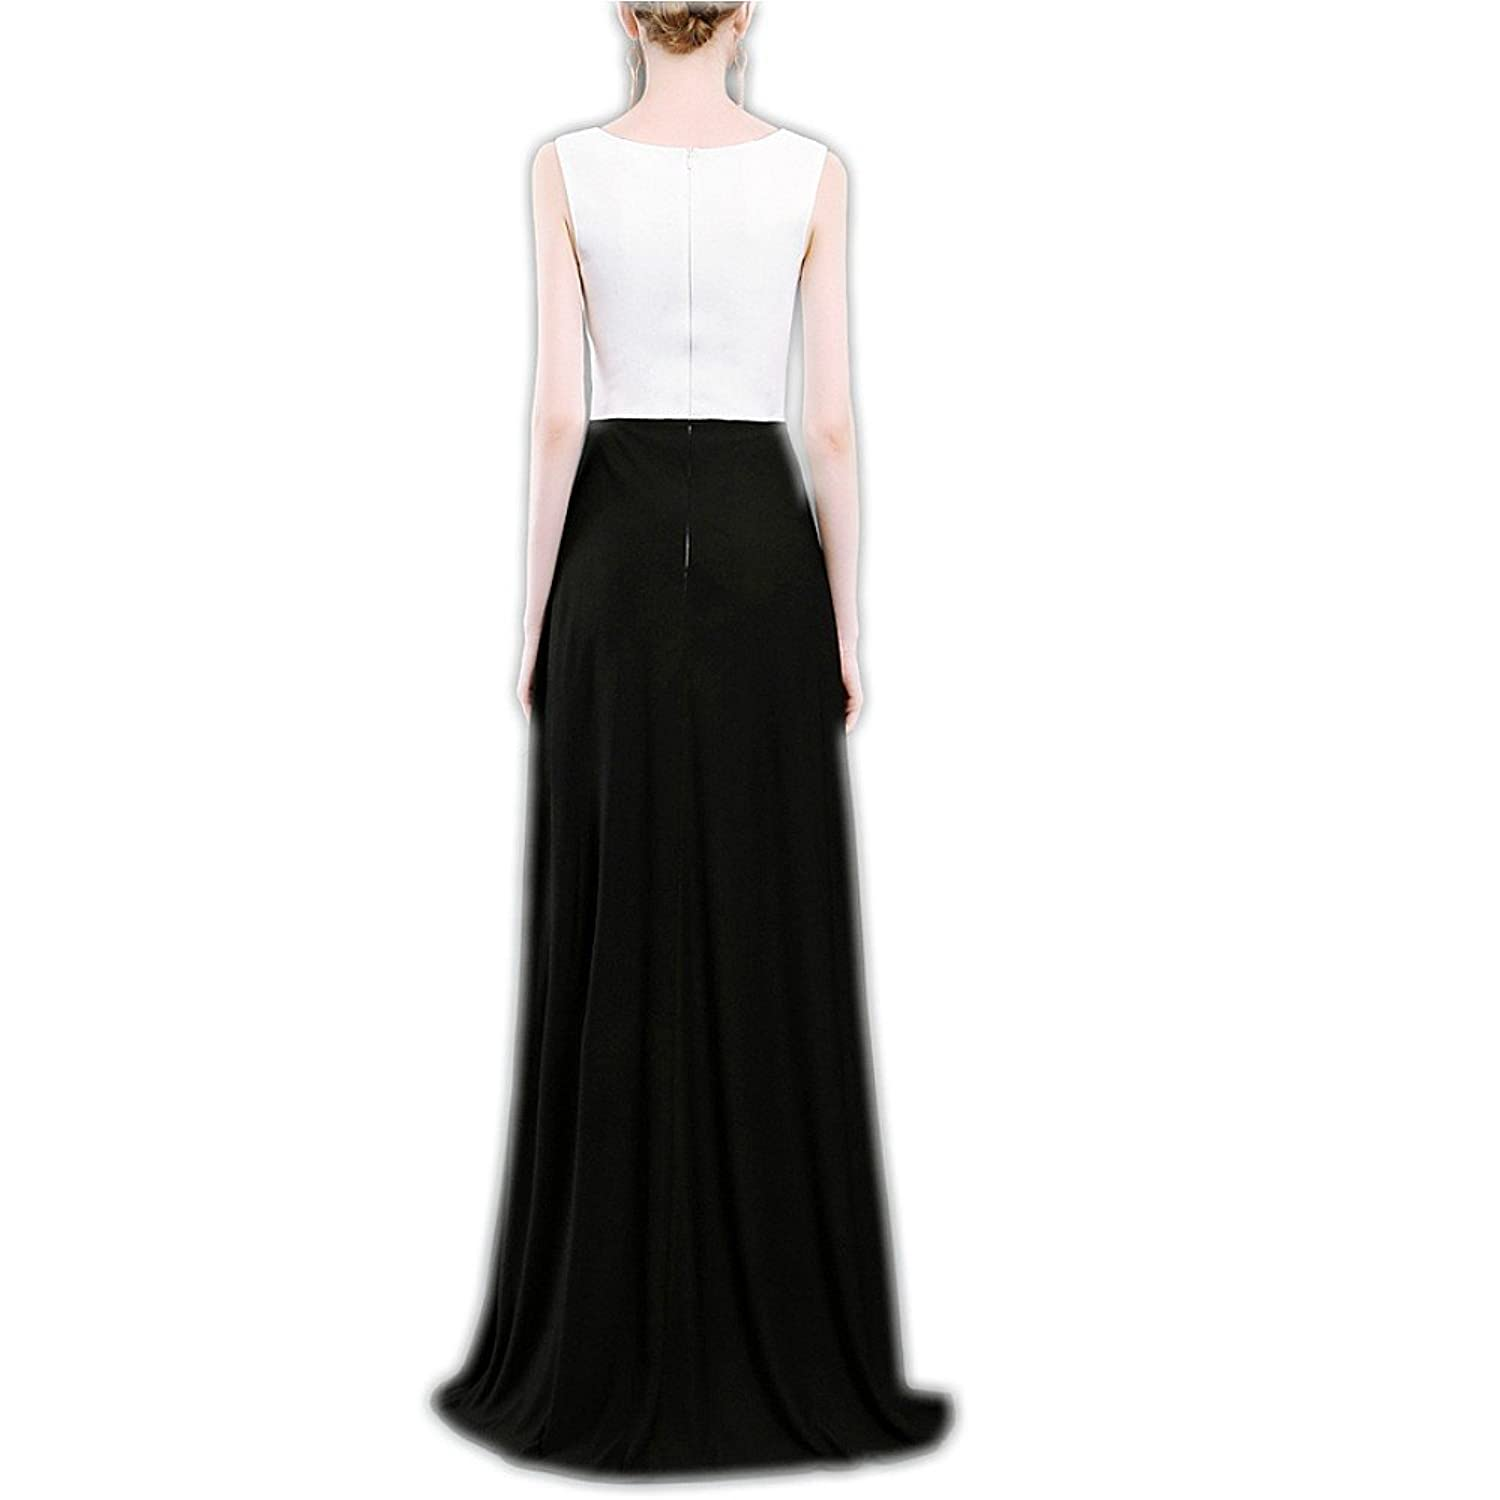 Women Girl party Evening Dresses Meibida white Black 2017 Formal Evening Gown Bride Banquet Prom Dress: Amazon.co.uk: Clothing